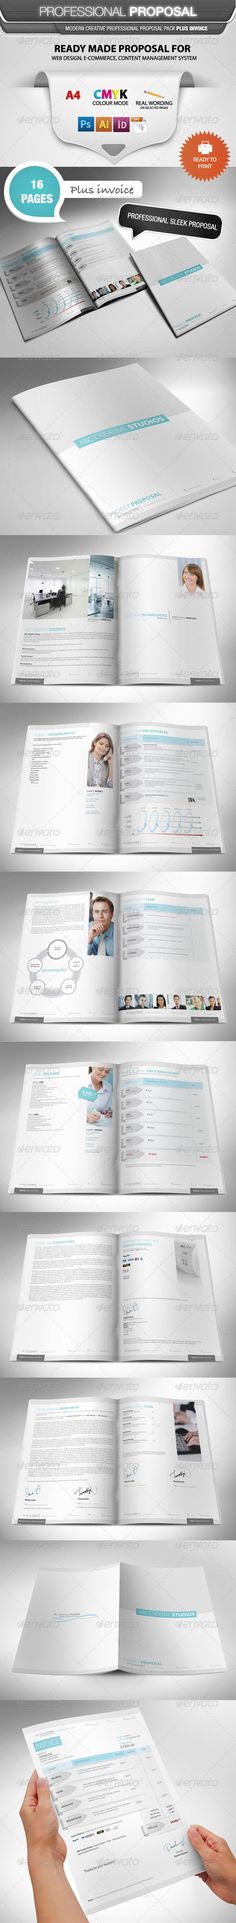 Moderno Project Proposal | Multipurpose Template | Project